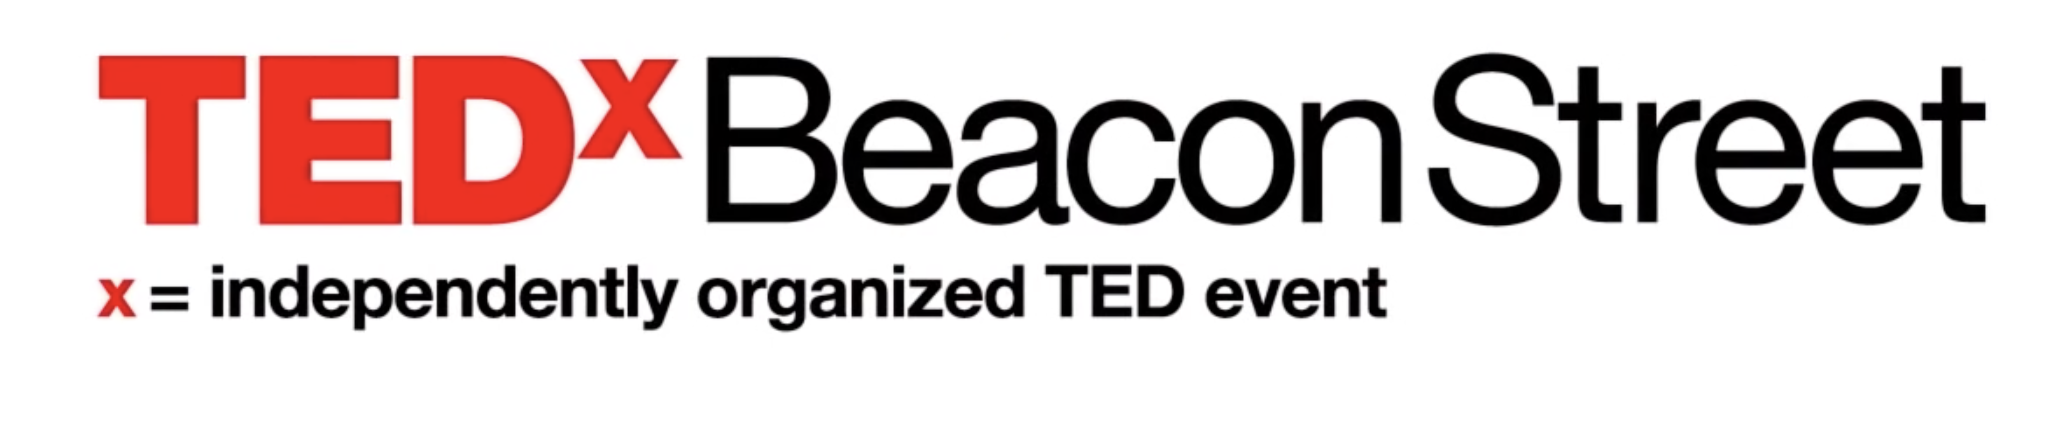 TEDx Beacon Street ss.png